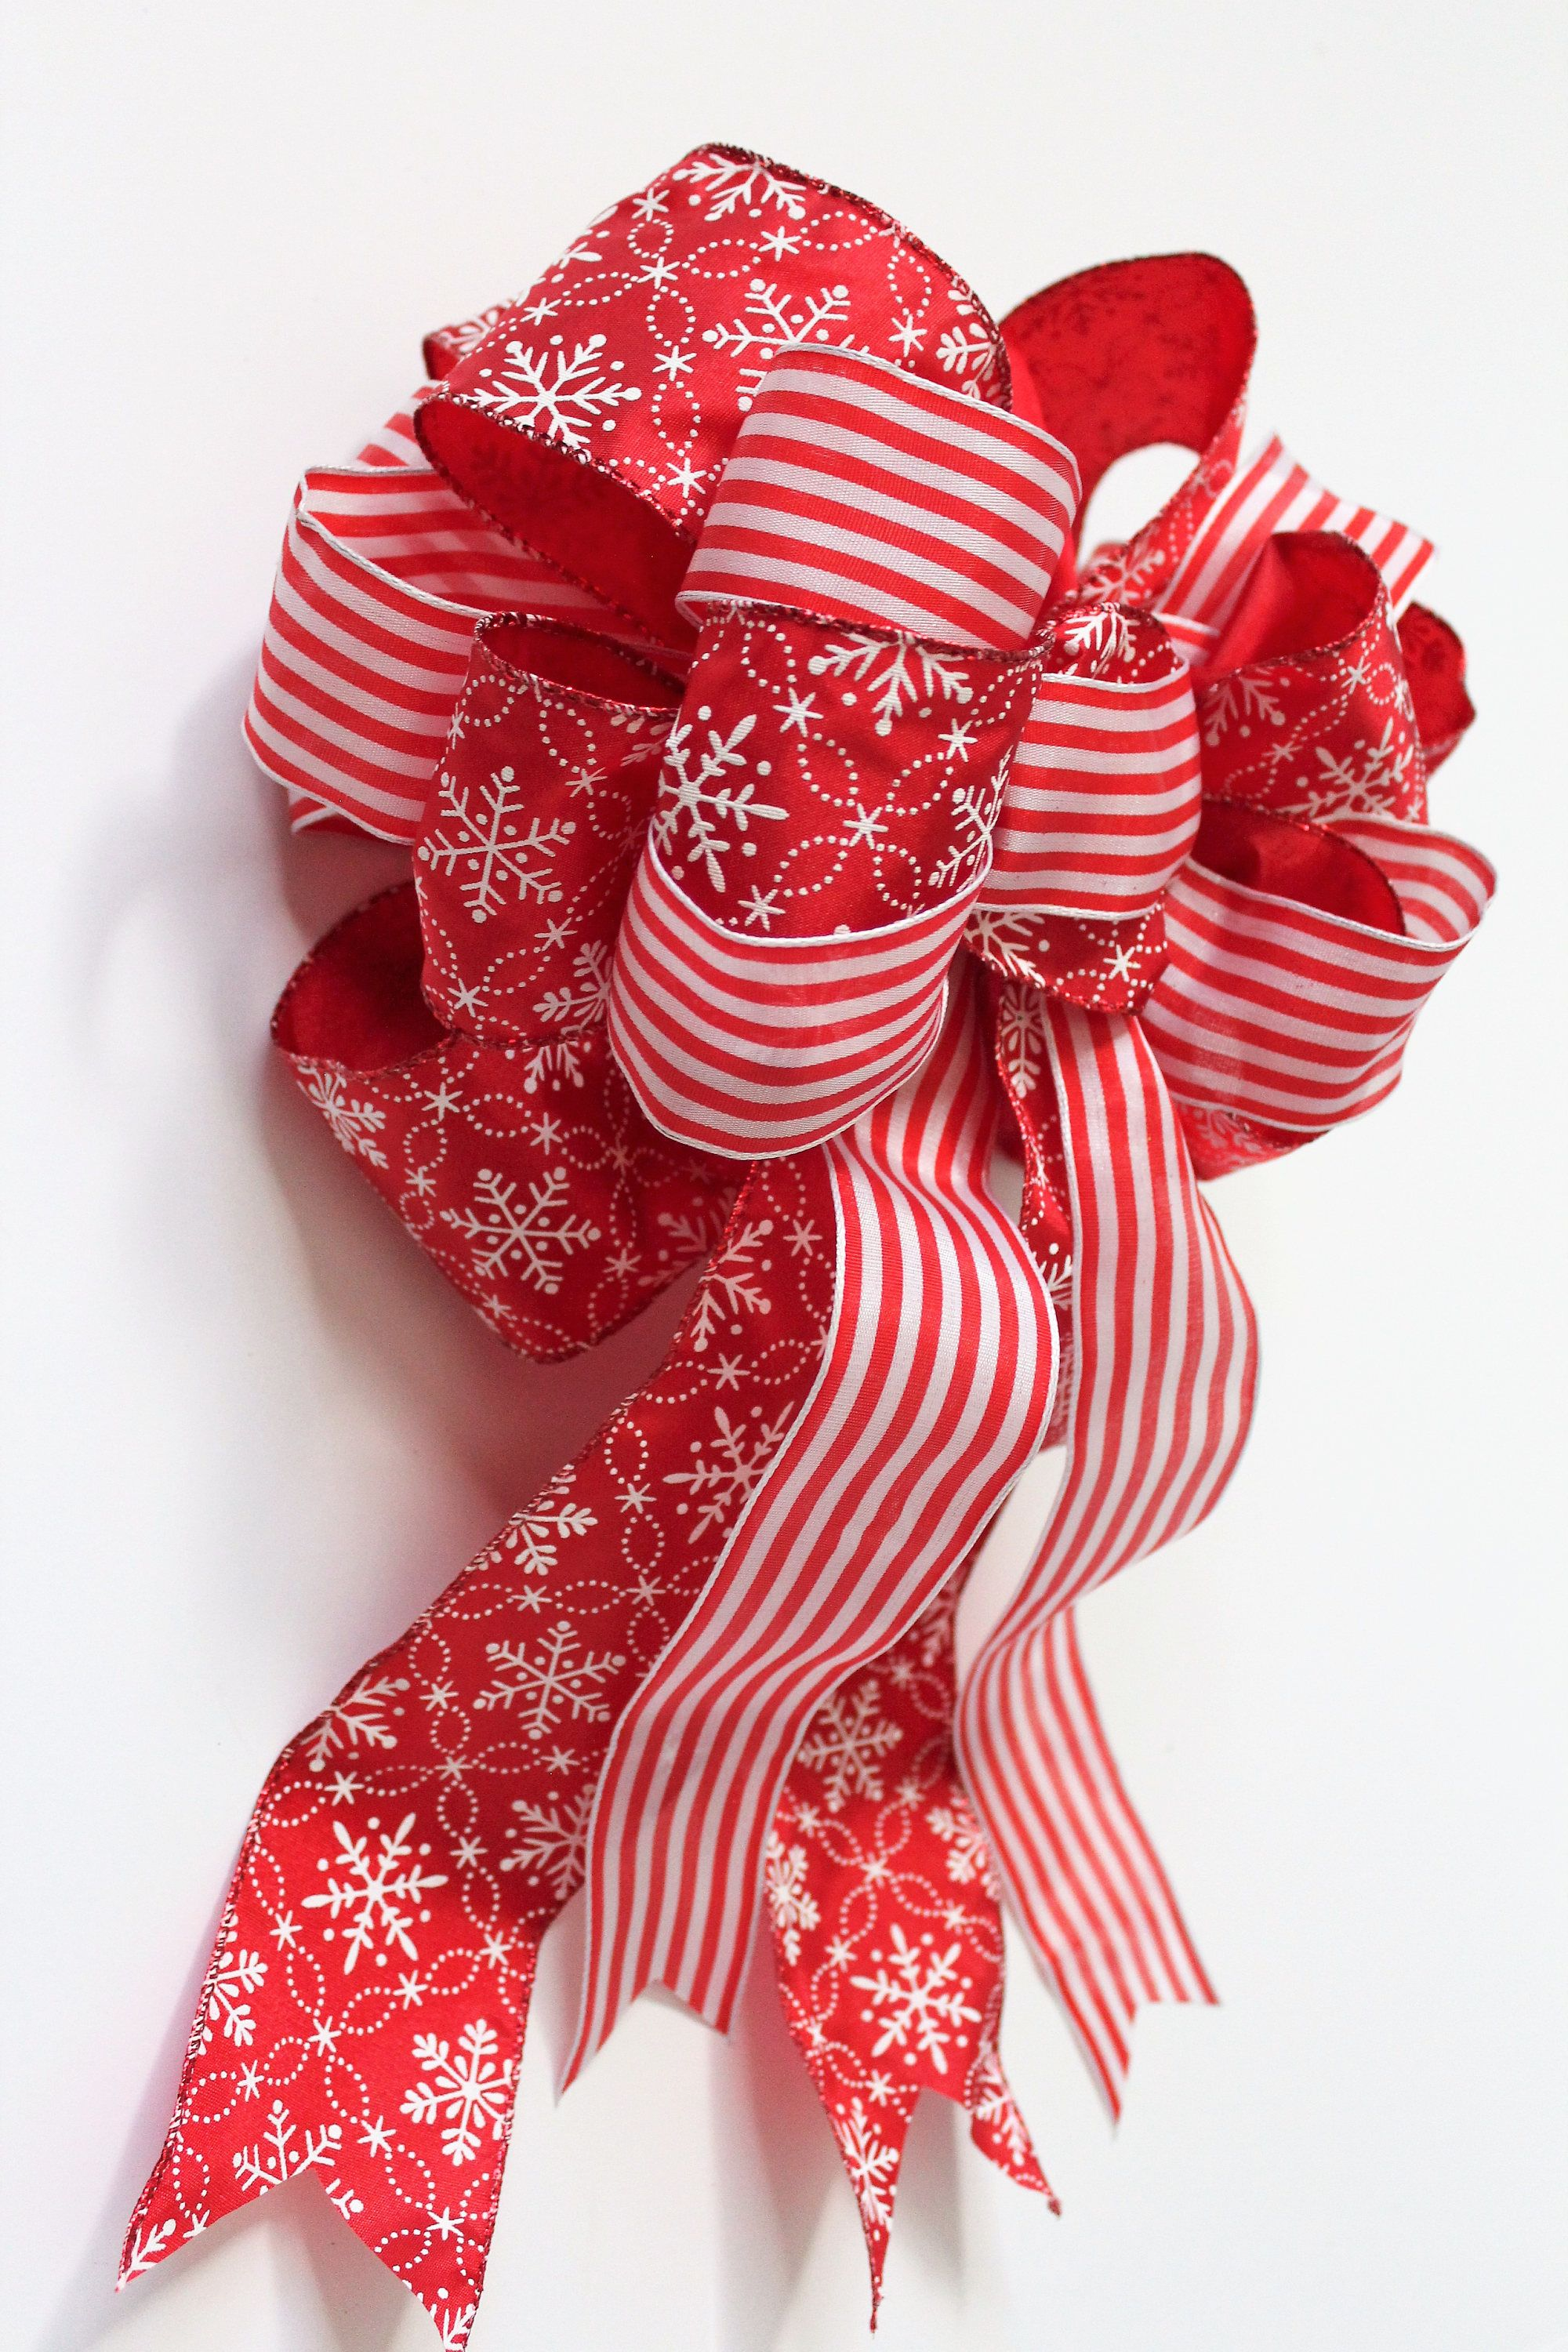 Large christmas bow red and white bow decorative bow for Christmas swags and garlands to make